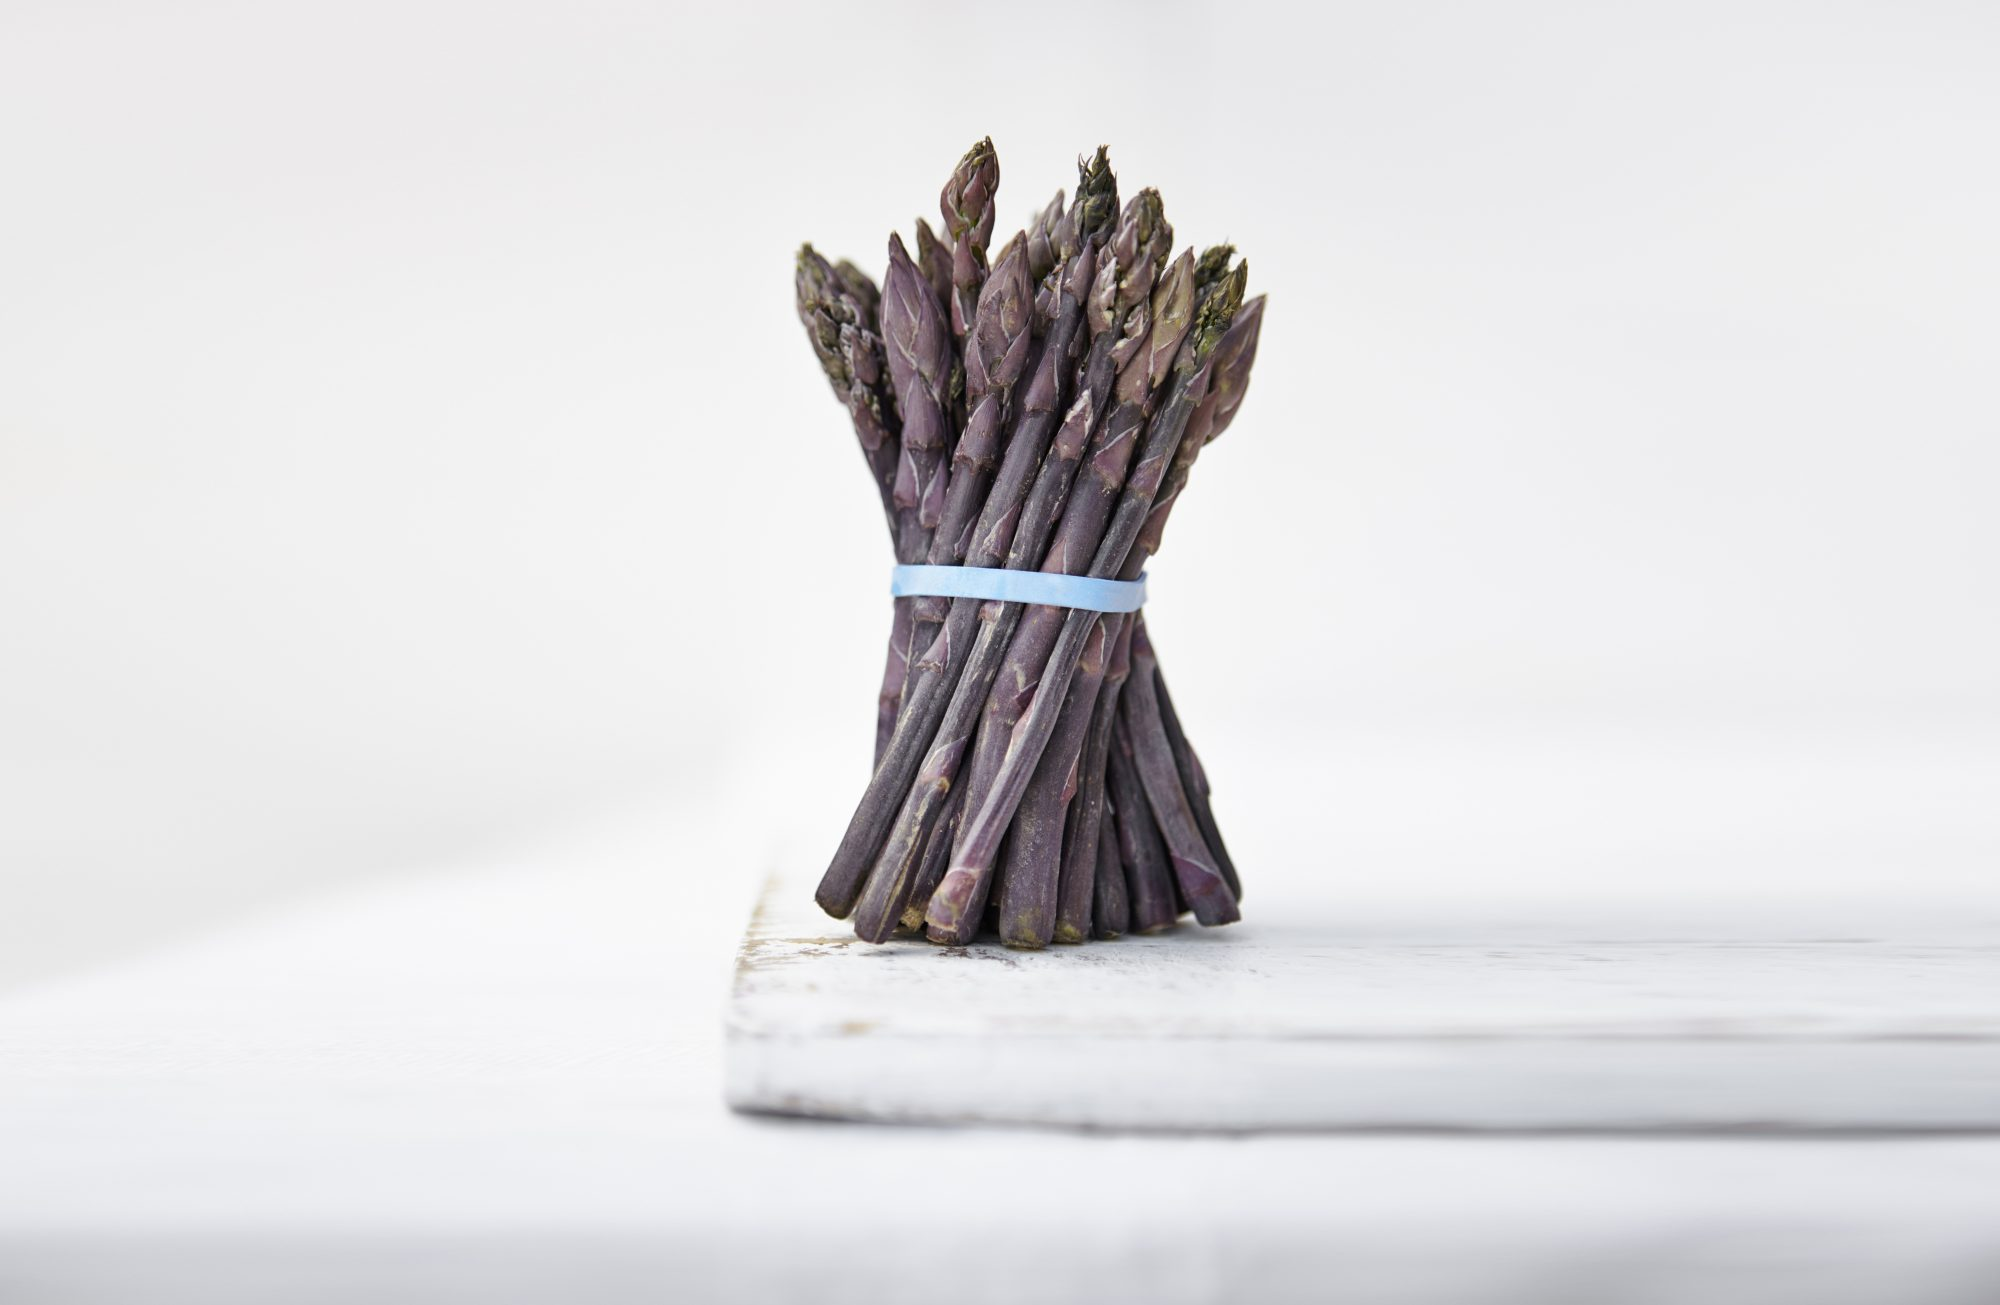 purple-asparagus-antioxidants